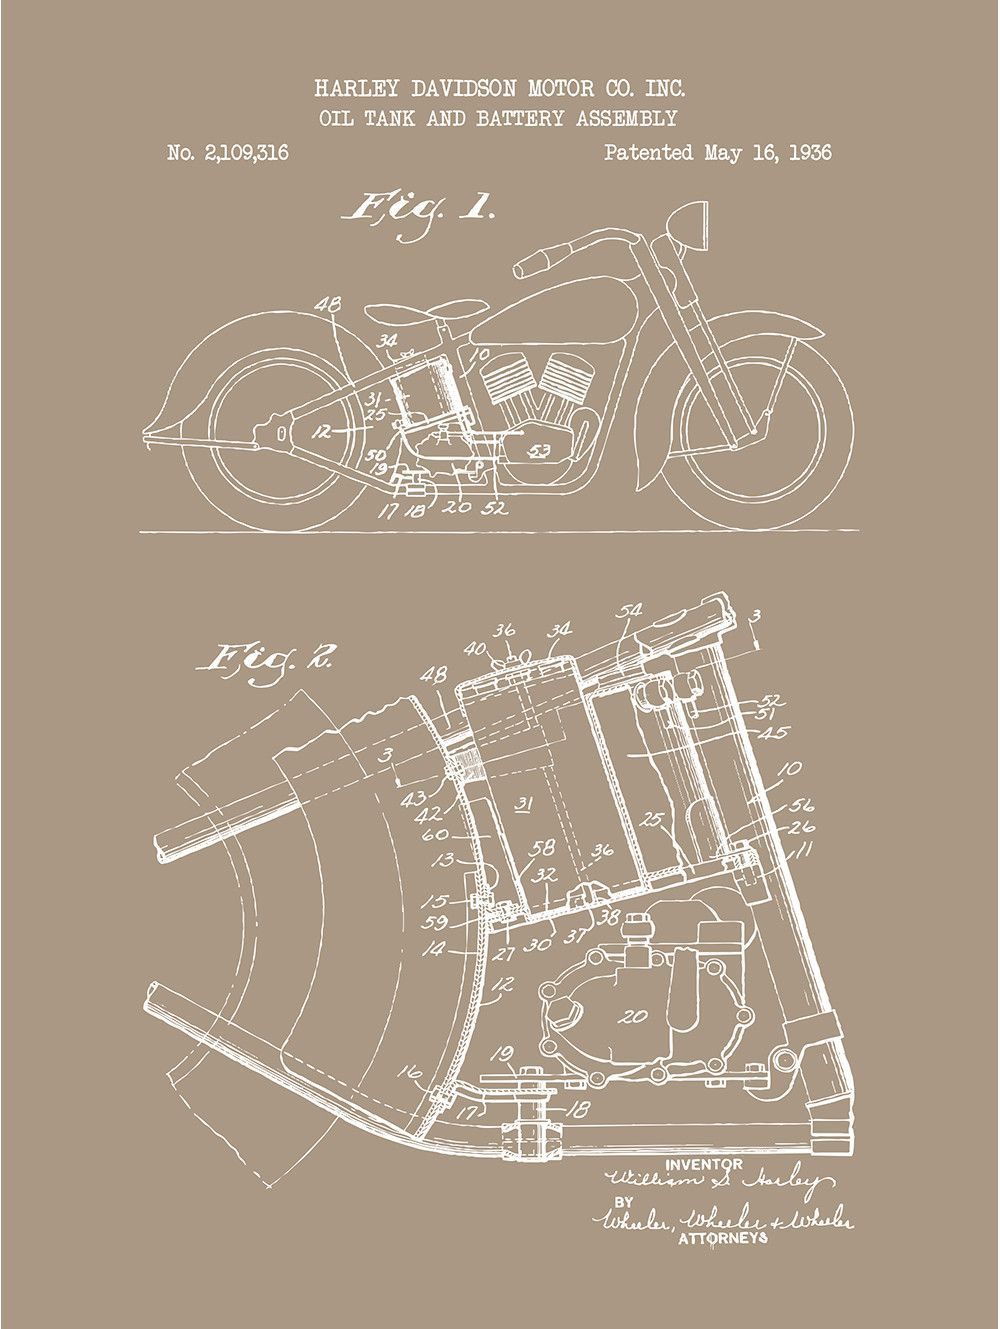 medium resolution of oil tank and battery assembly harley davidson motor co 1936